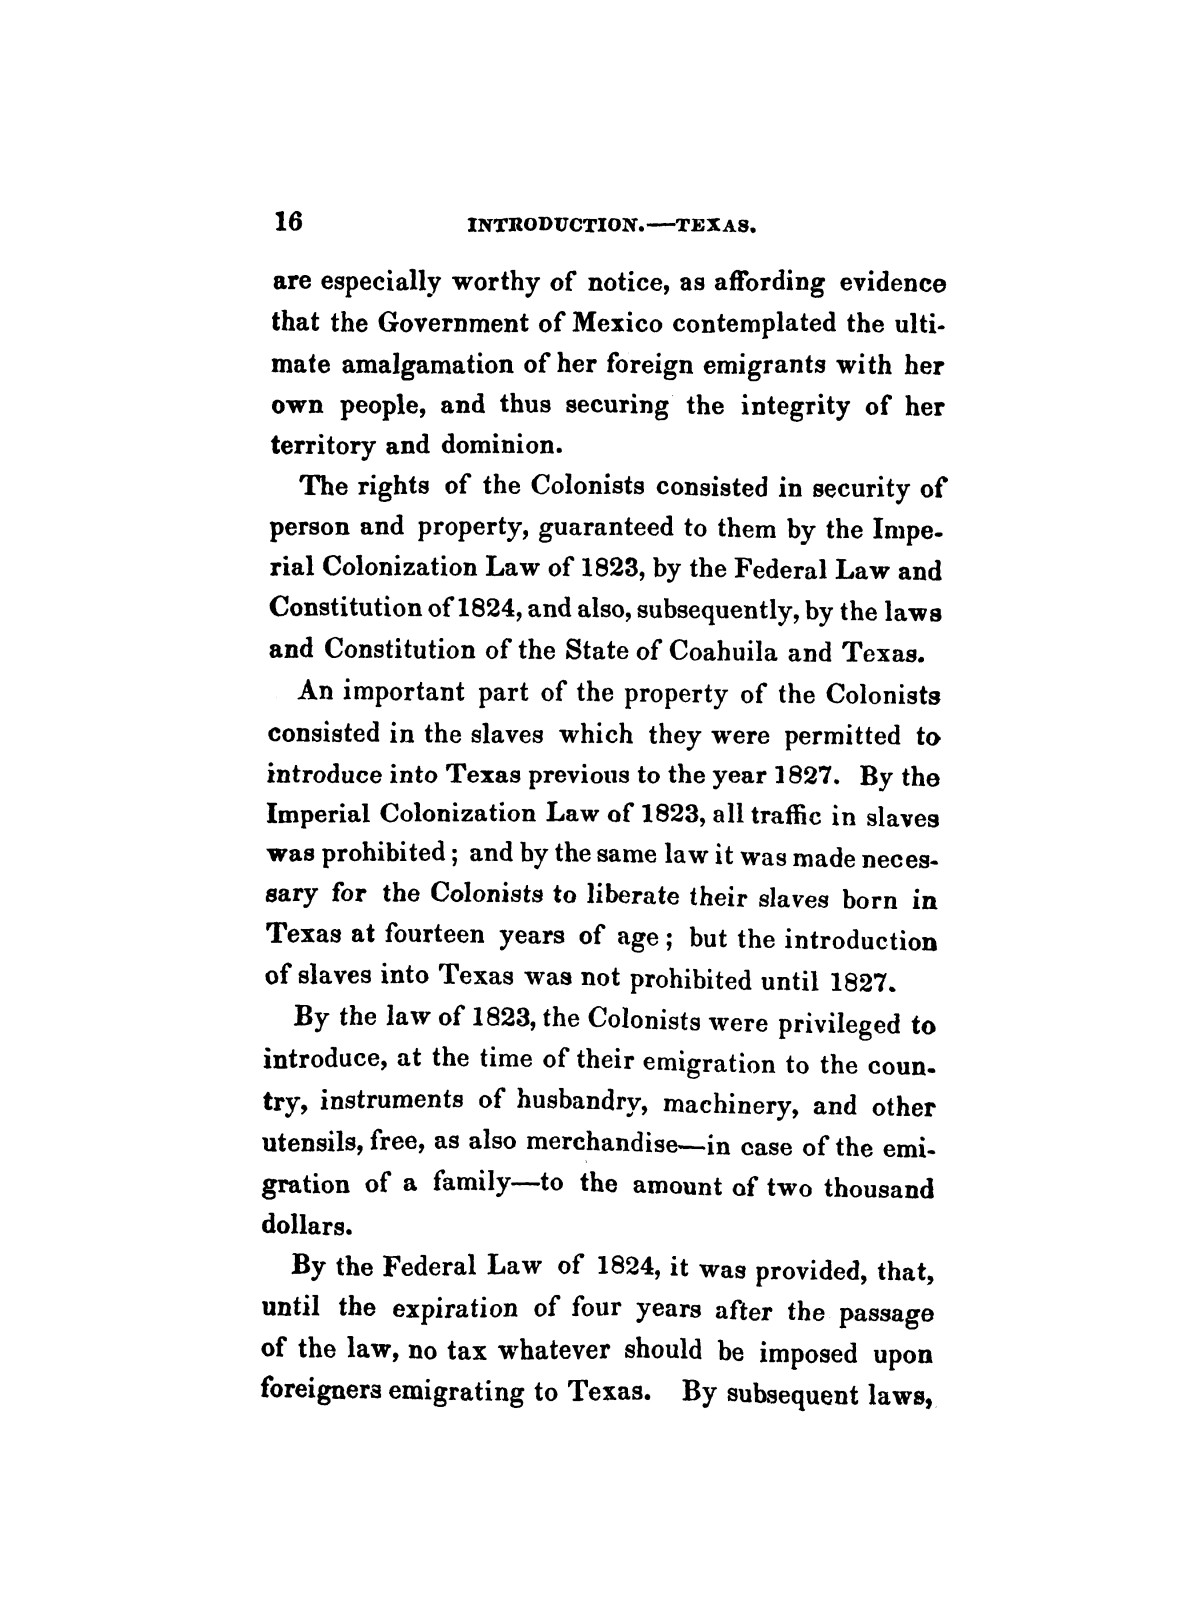 History of the revolution in Texas, particularly of the war of 1835 & '36; together with the latest geographical, topographical, and statistical accounts of the country, from the most authentic sources. Also, an appendix. By the Rev. C. Newell.                                                                                                      [Sequence #]: 28 of 227